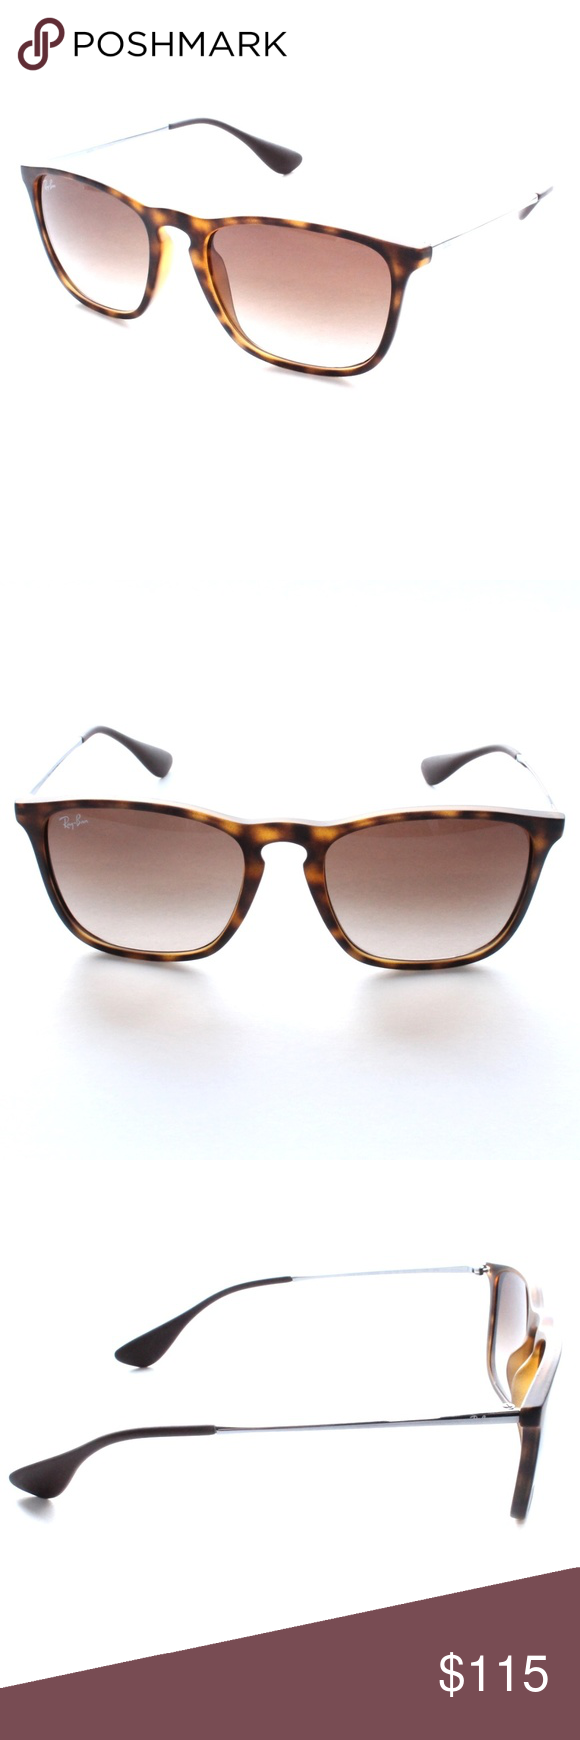 2c8c34fc32 Ray-Ban Chris RB4187 856 13 54-18 3N Tortoise Brand New 100% Authentic Ray-Ban  Chris RB4187 856 13 54-18 3N Tortoise Frame Brown Gradient Lenses Comes  with ...